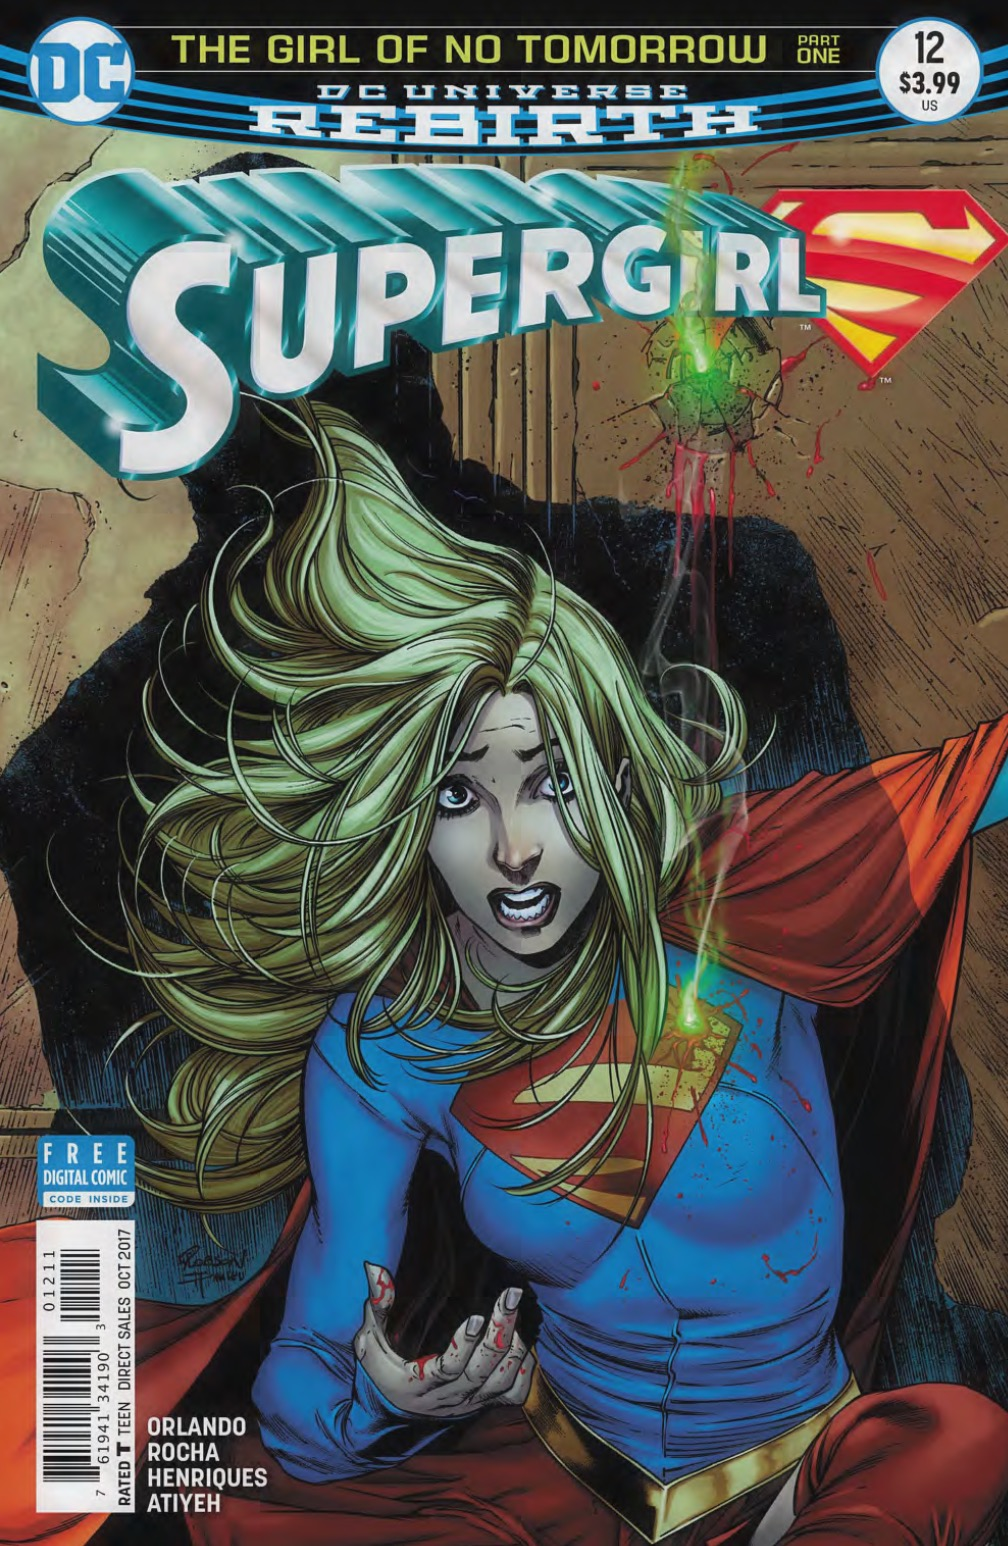 Supergirl #12 Review